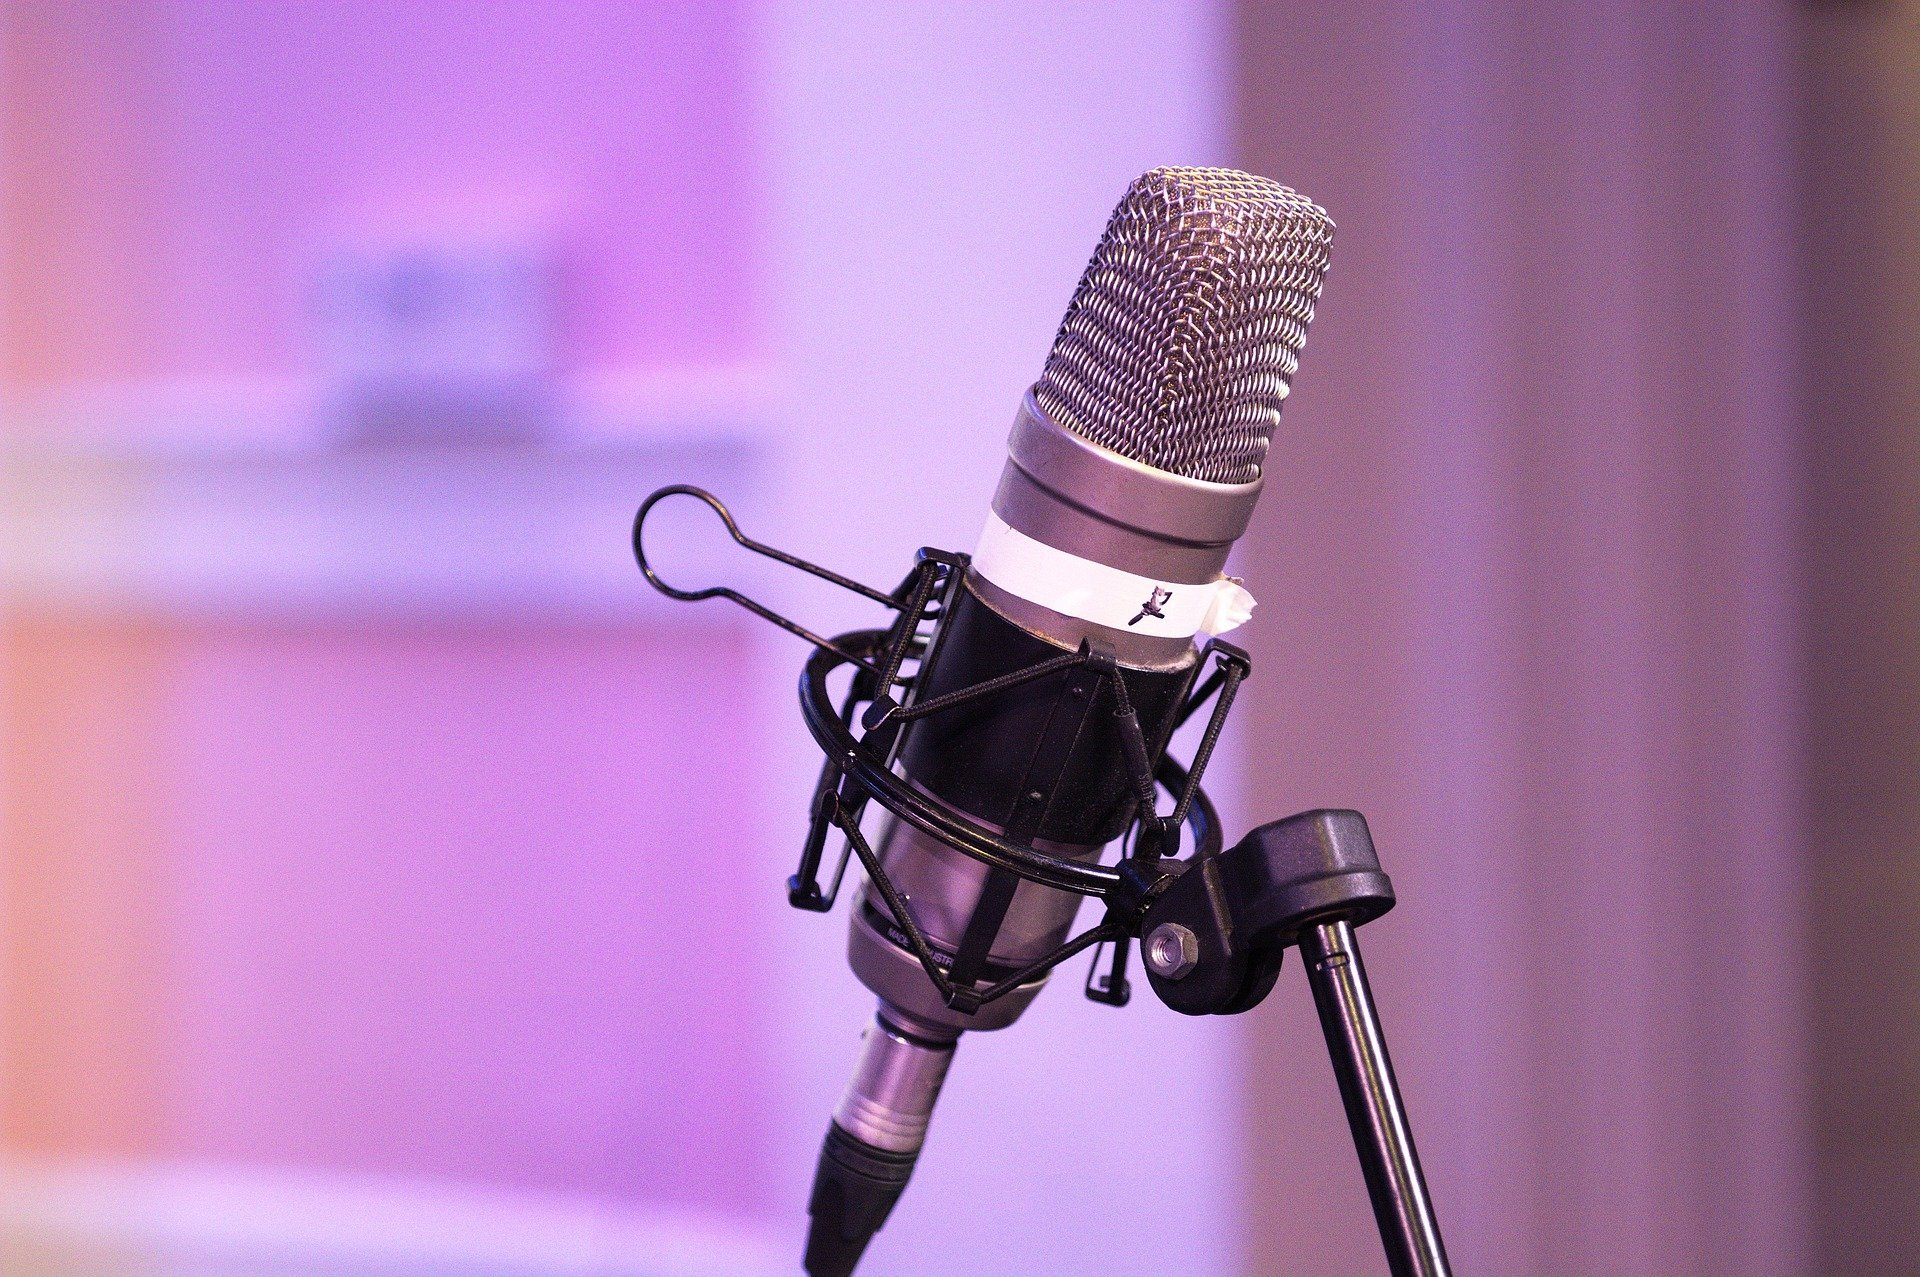 Pictured: Podcast equipment consisting of a microphone for audio or sound output   Photo: Pixabay